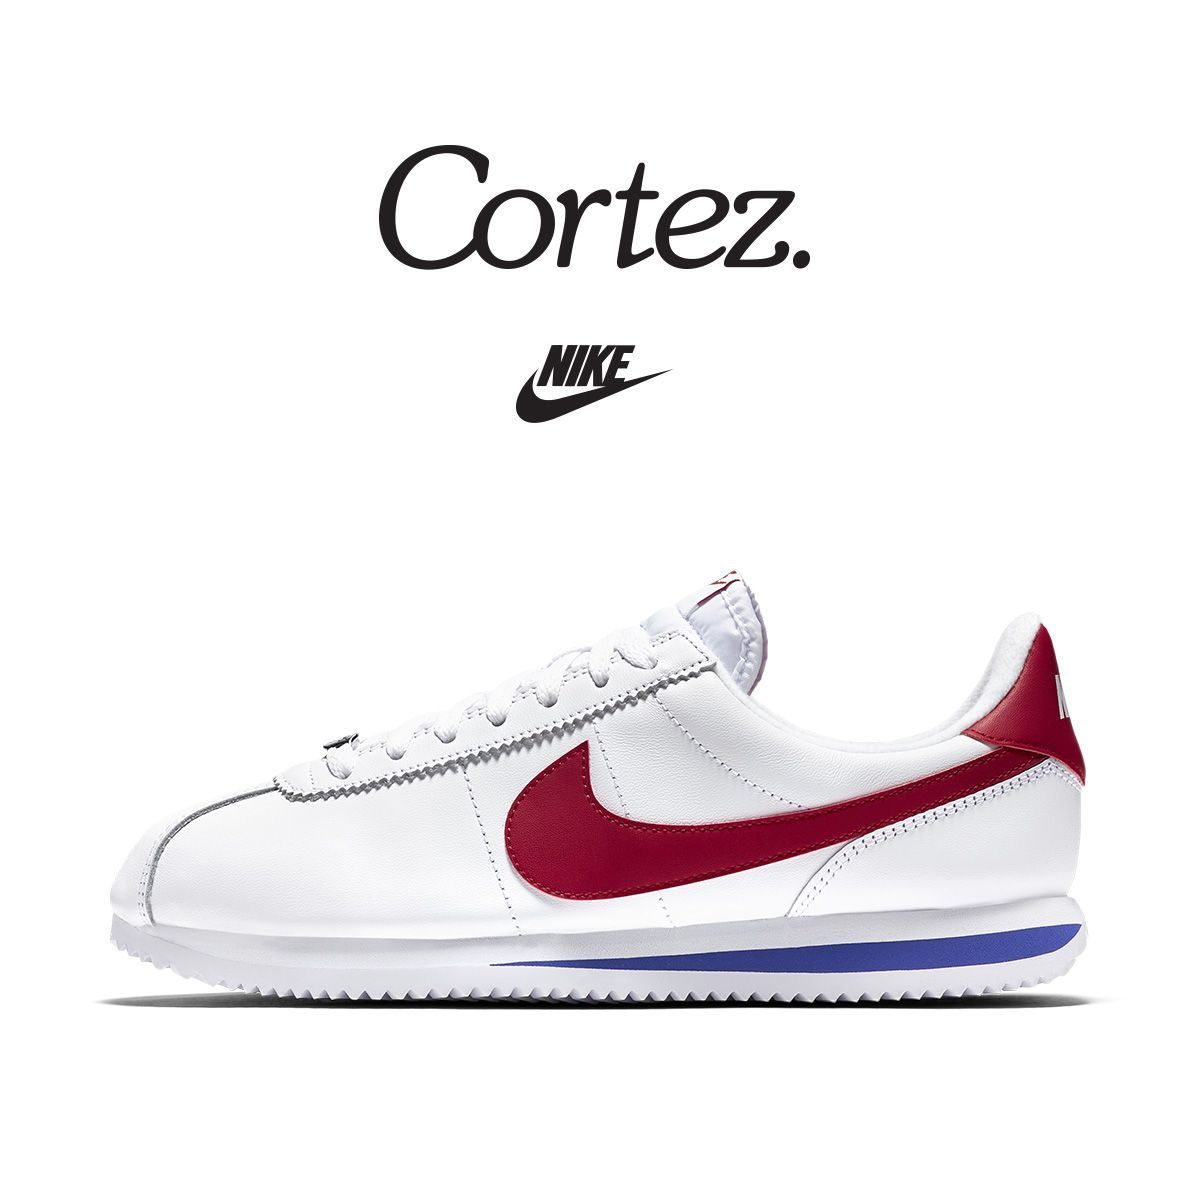 The Nike Cortez turns 45! Celebrate by